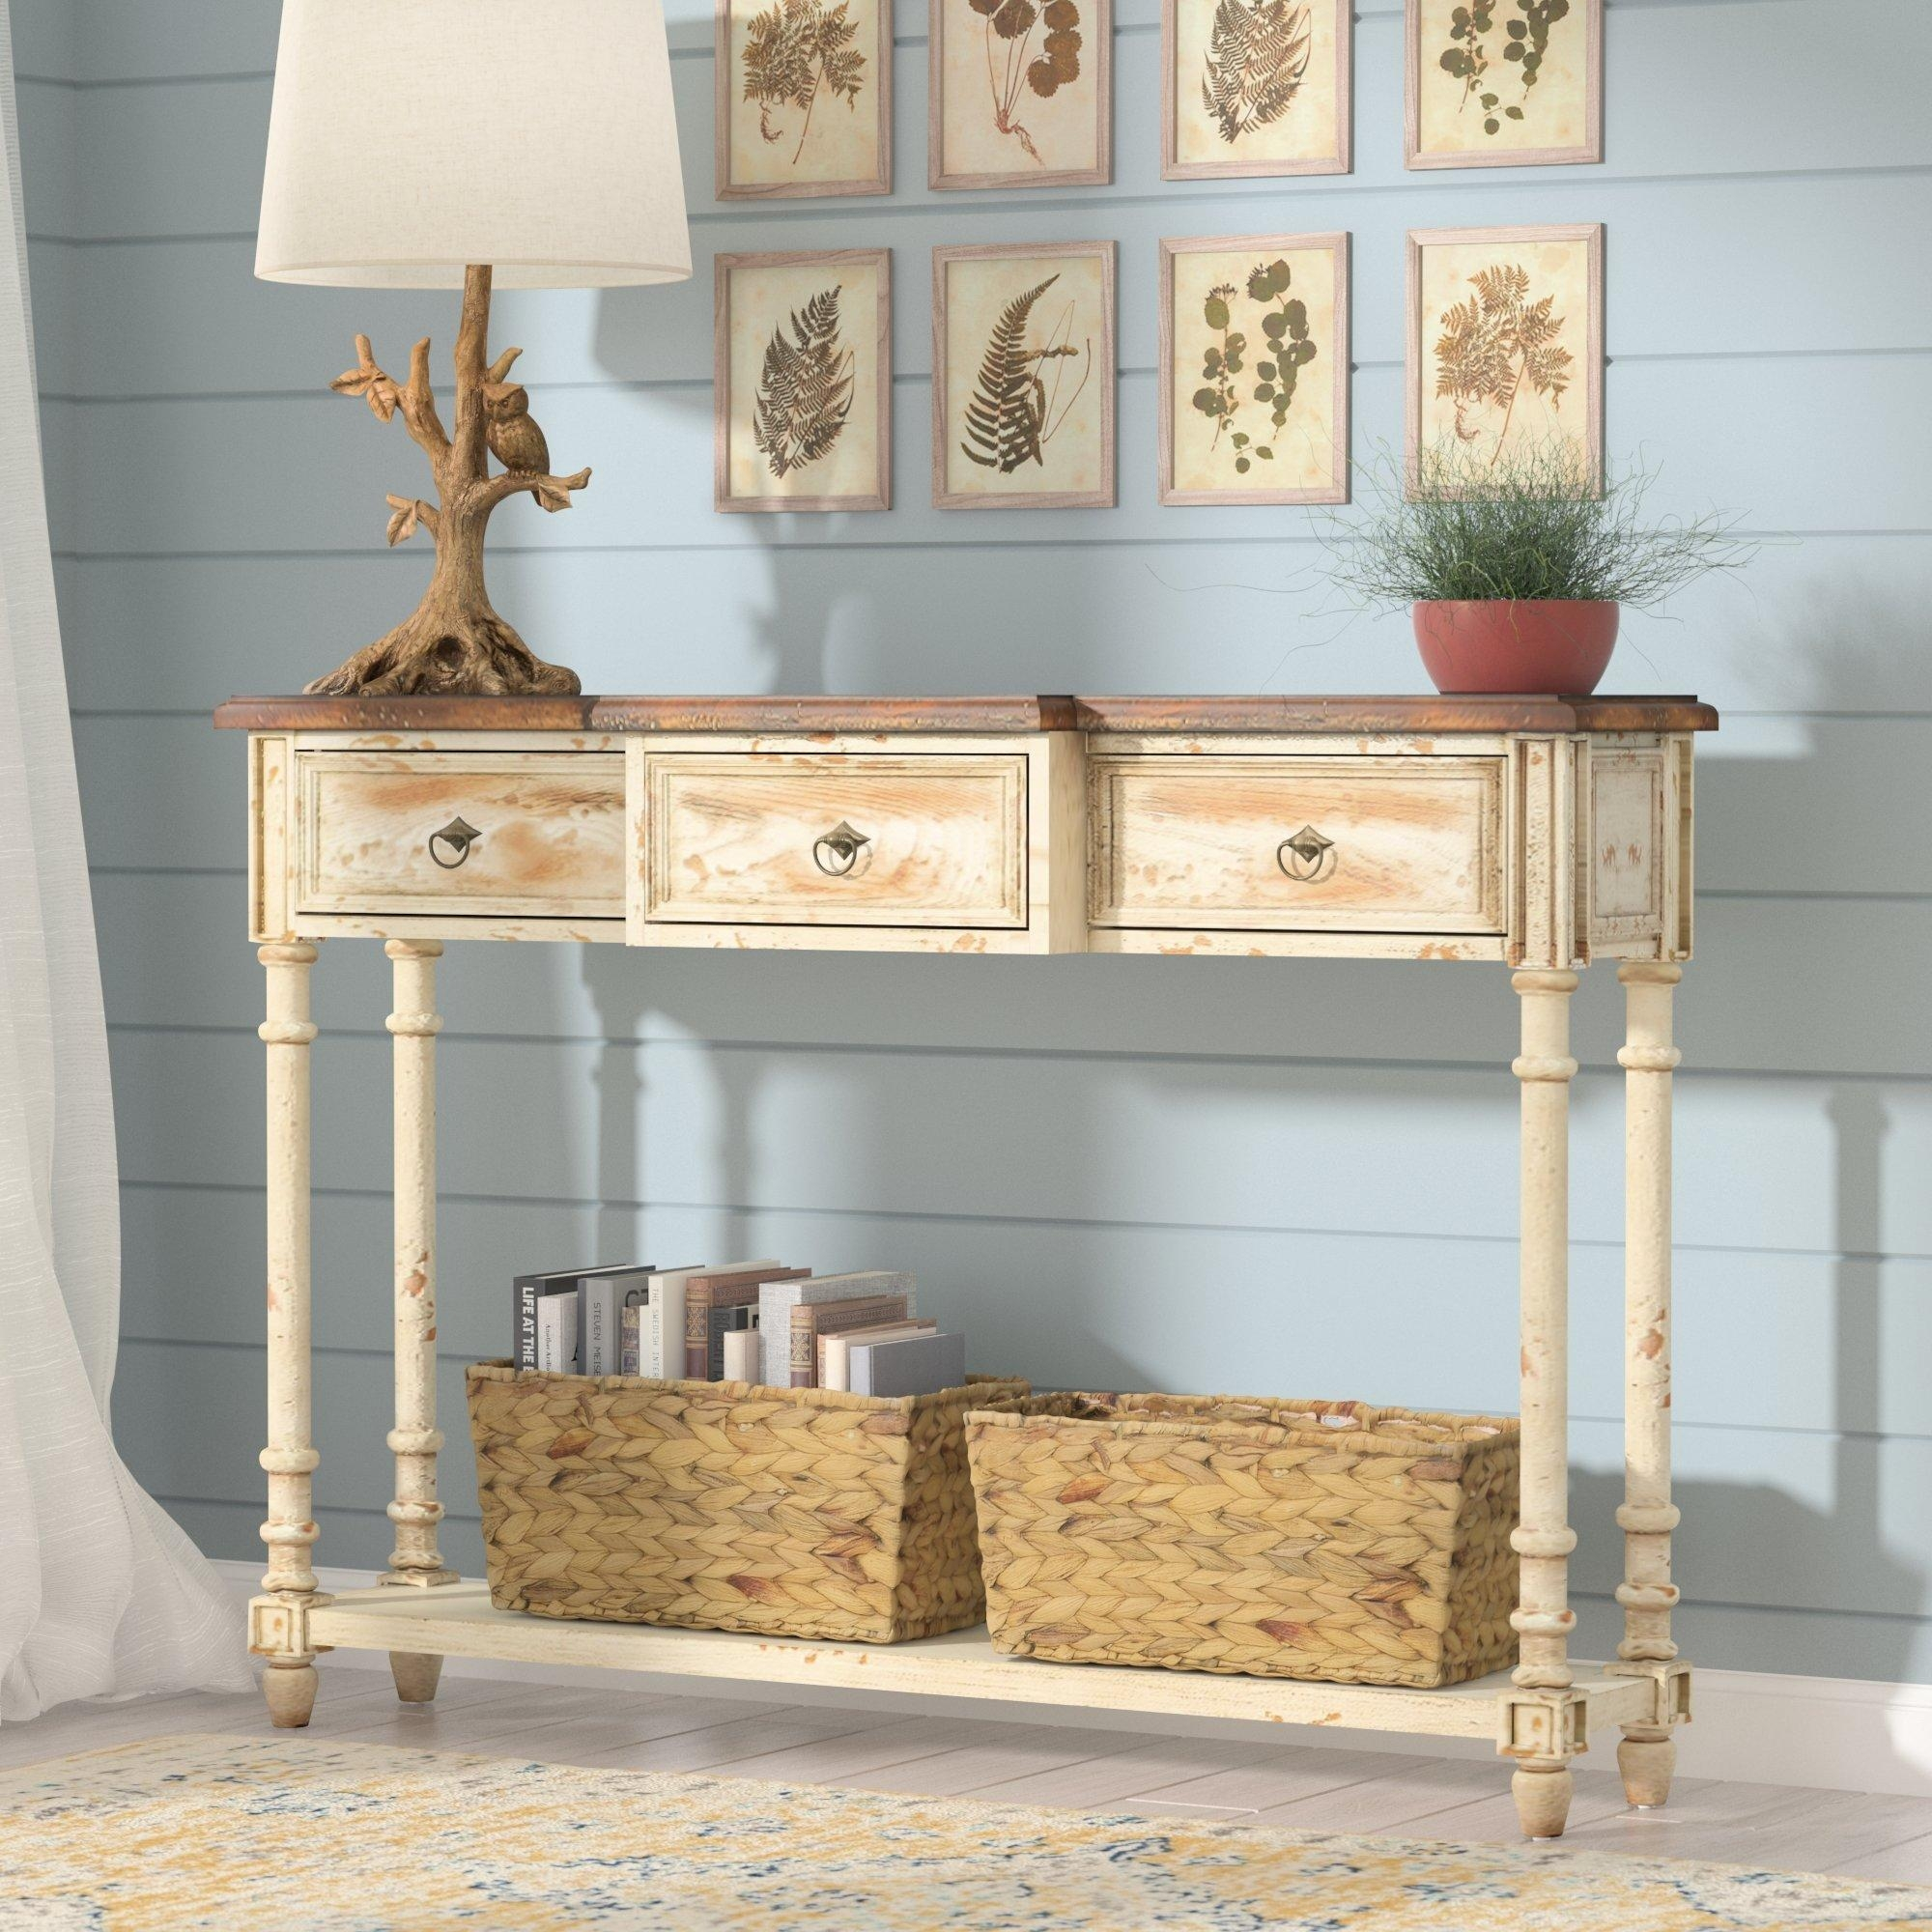 Cottage Sofa Table | Tehranmix Decoration Throughout Country Sofa Tables (Image 3 of 20)